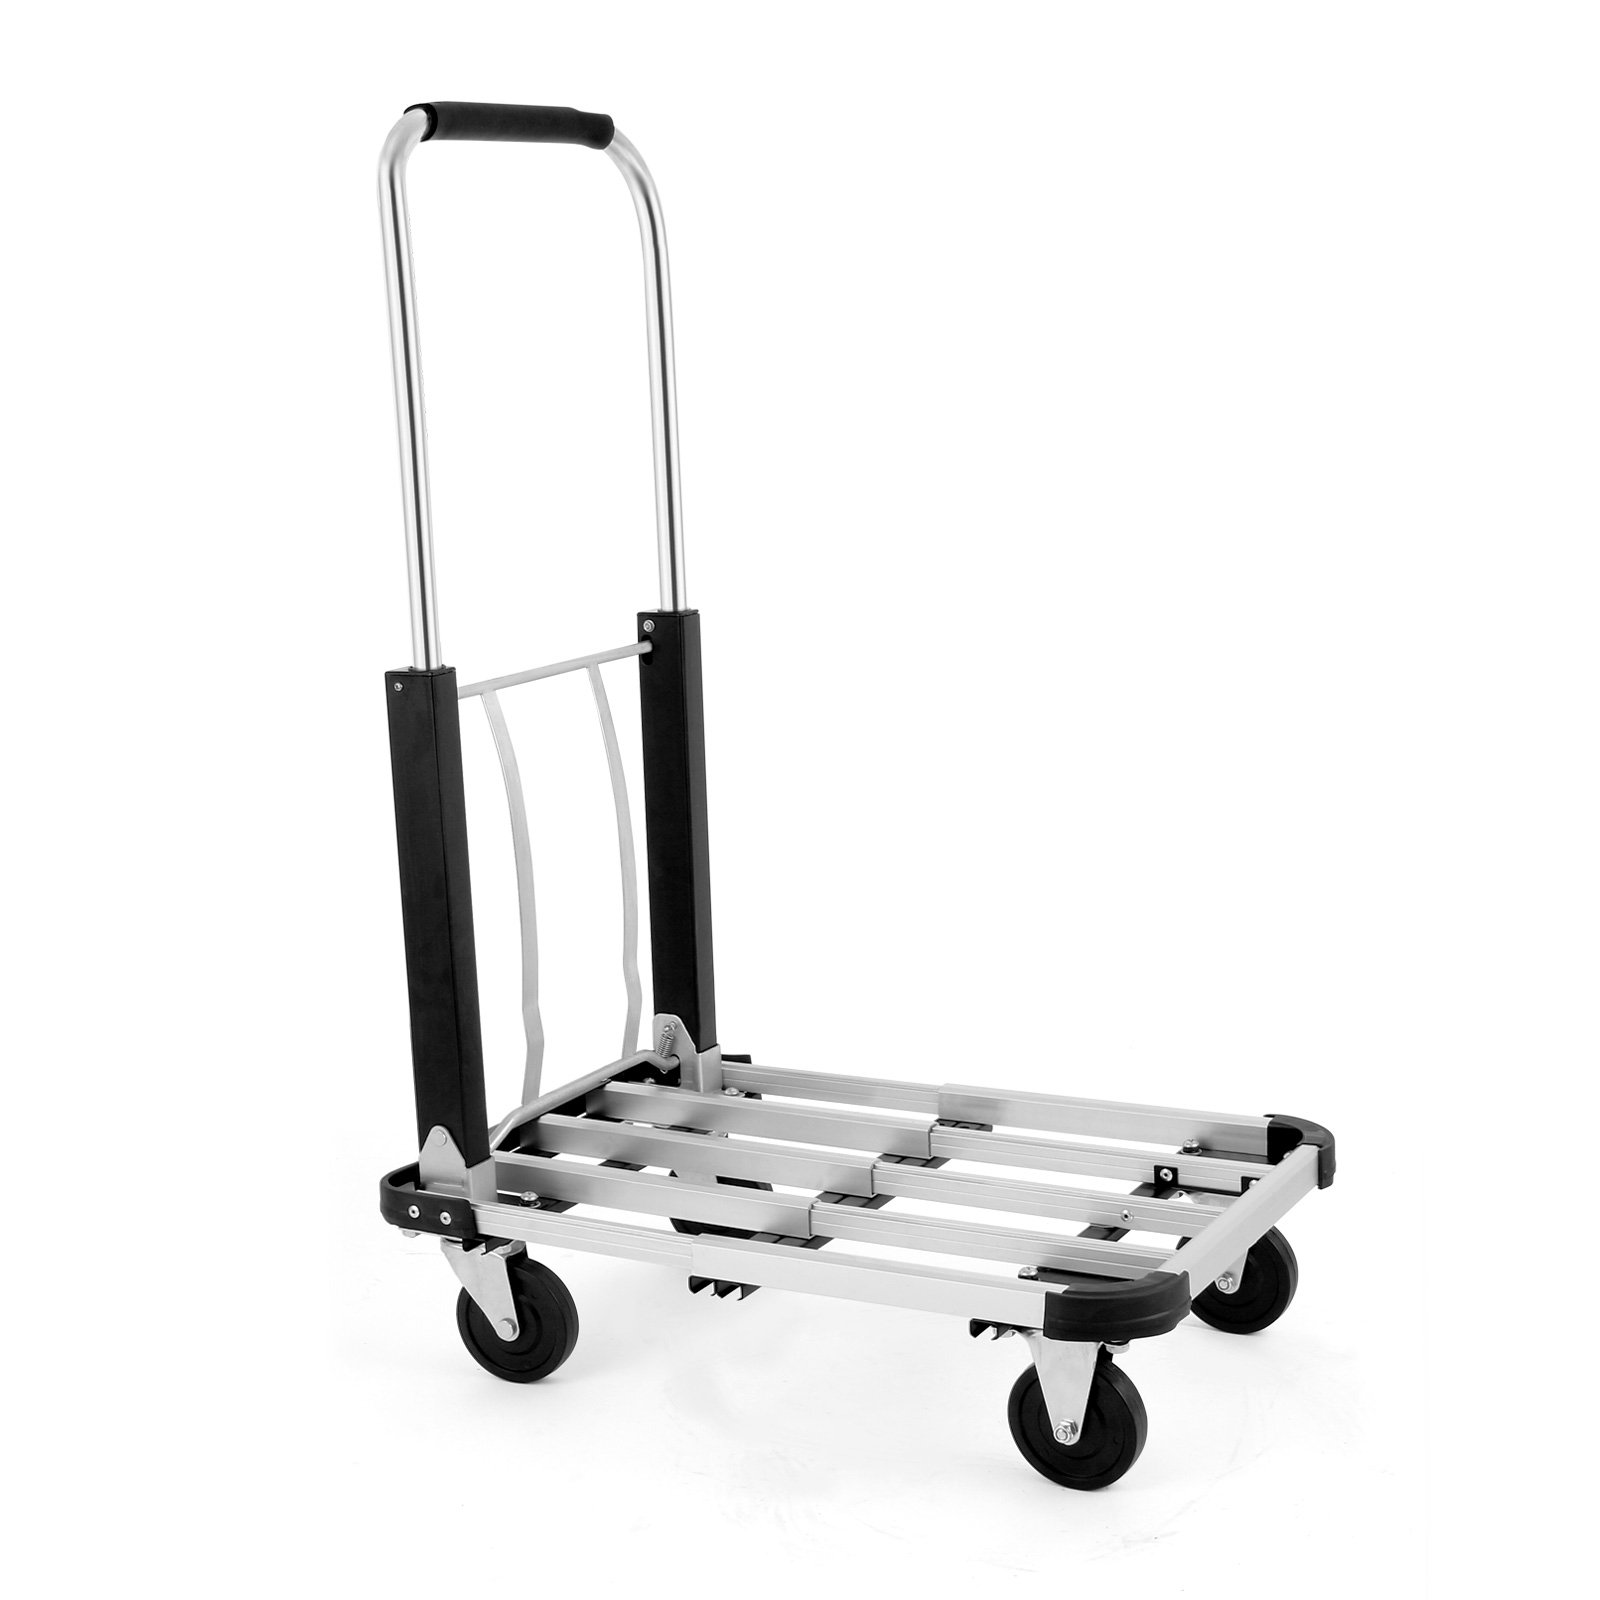 VEVOR Aluminum Foldable Hand Truck Cart Heavy Duty 330 lb Utility Dolly Collapsible Trolley (Hand Truck Cart)